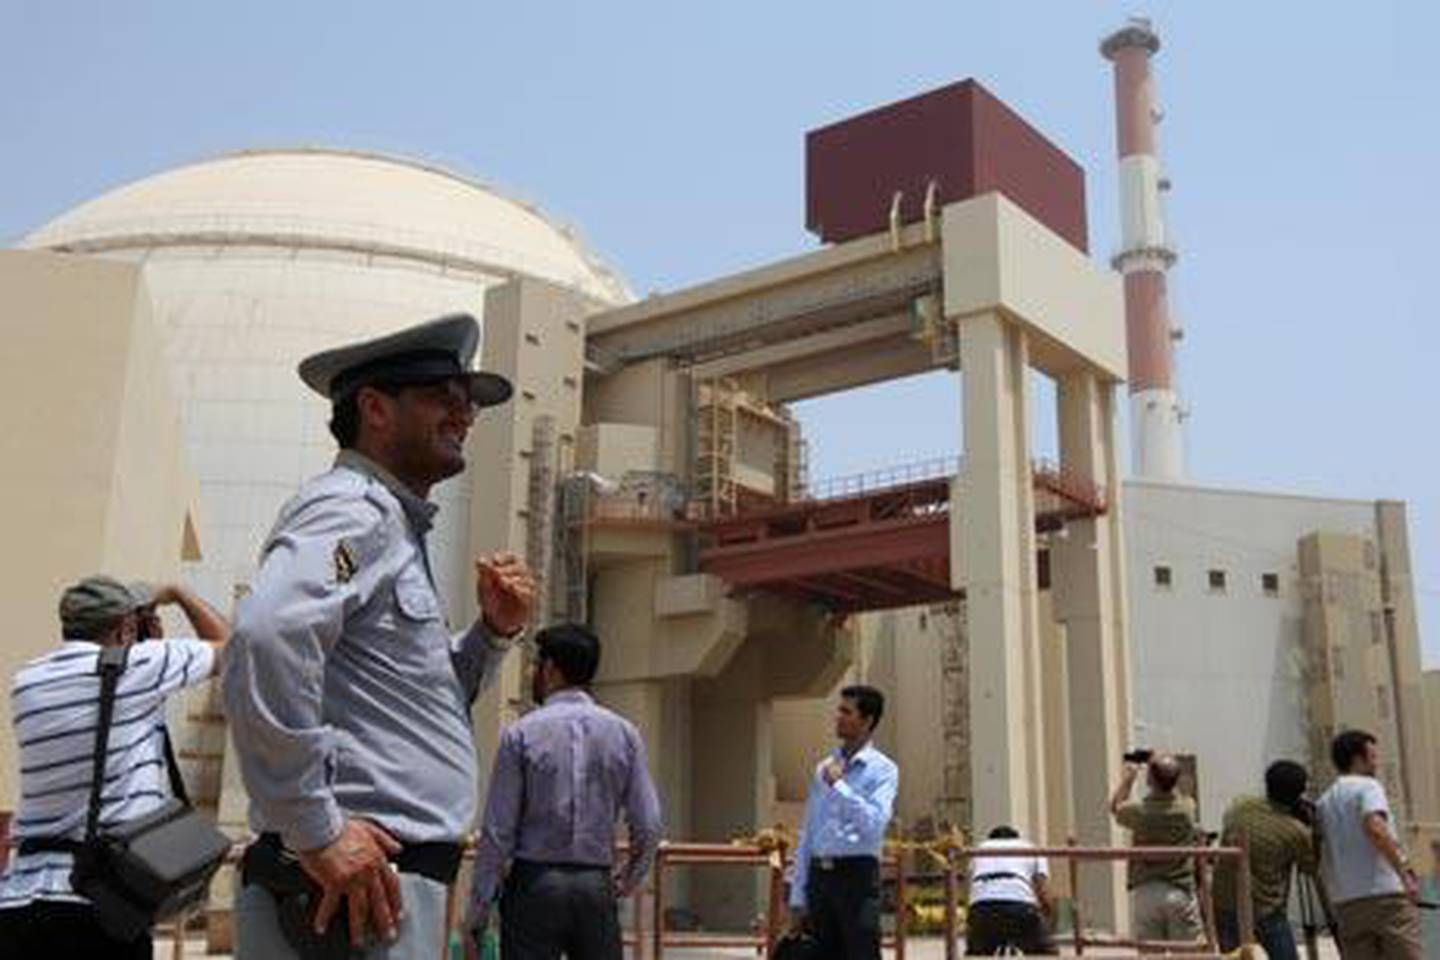 """(FILES) -- An Iranian security man stands next to journalists outside the reactor building at the Russian-built Bushehr nuclear power plant in southern Iran on August 21, 2010. The Stuxnet computer worm has infected 30,000 computers in Iran but has failed to """"cause serious damage,"""" Iranian officials were quoted as saying on September 26, 2010. A German computer security researcher suspected Stuxnet's target was the Bushehr nuclear facility in Iran, where unspecified problems have been blamed for getting the facility fully operational. AFP PHOTO/ATTA KENARE"""